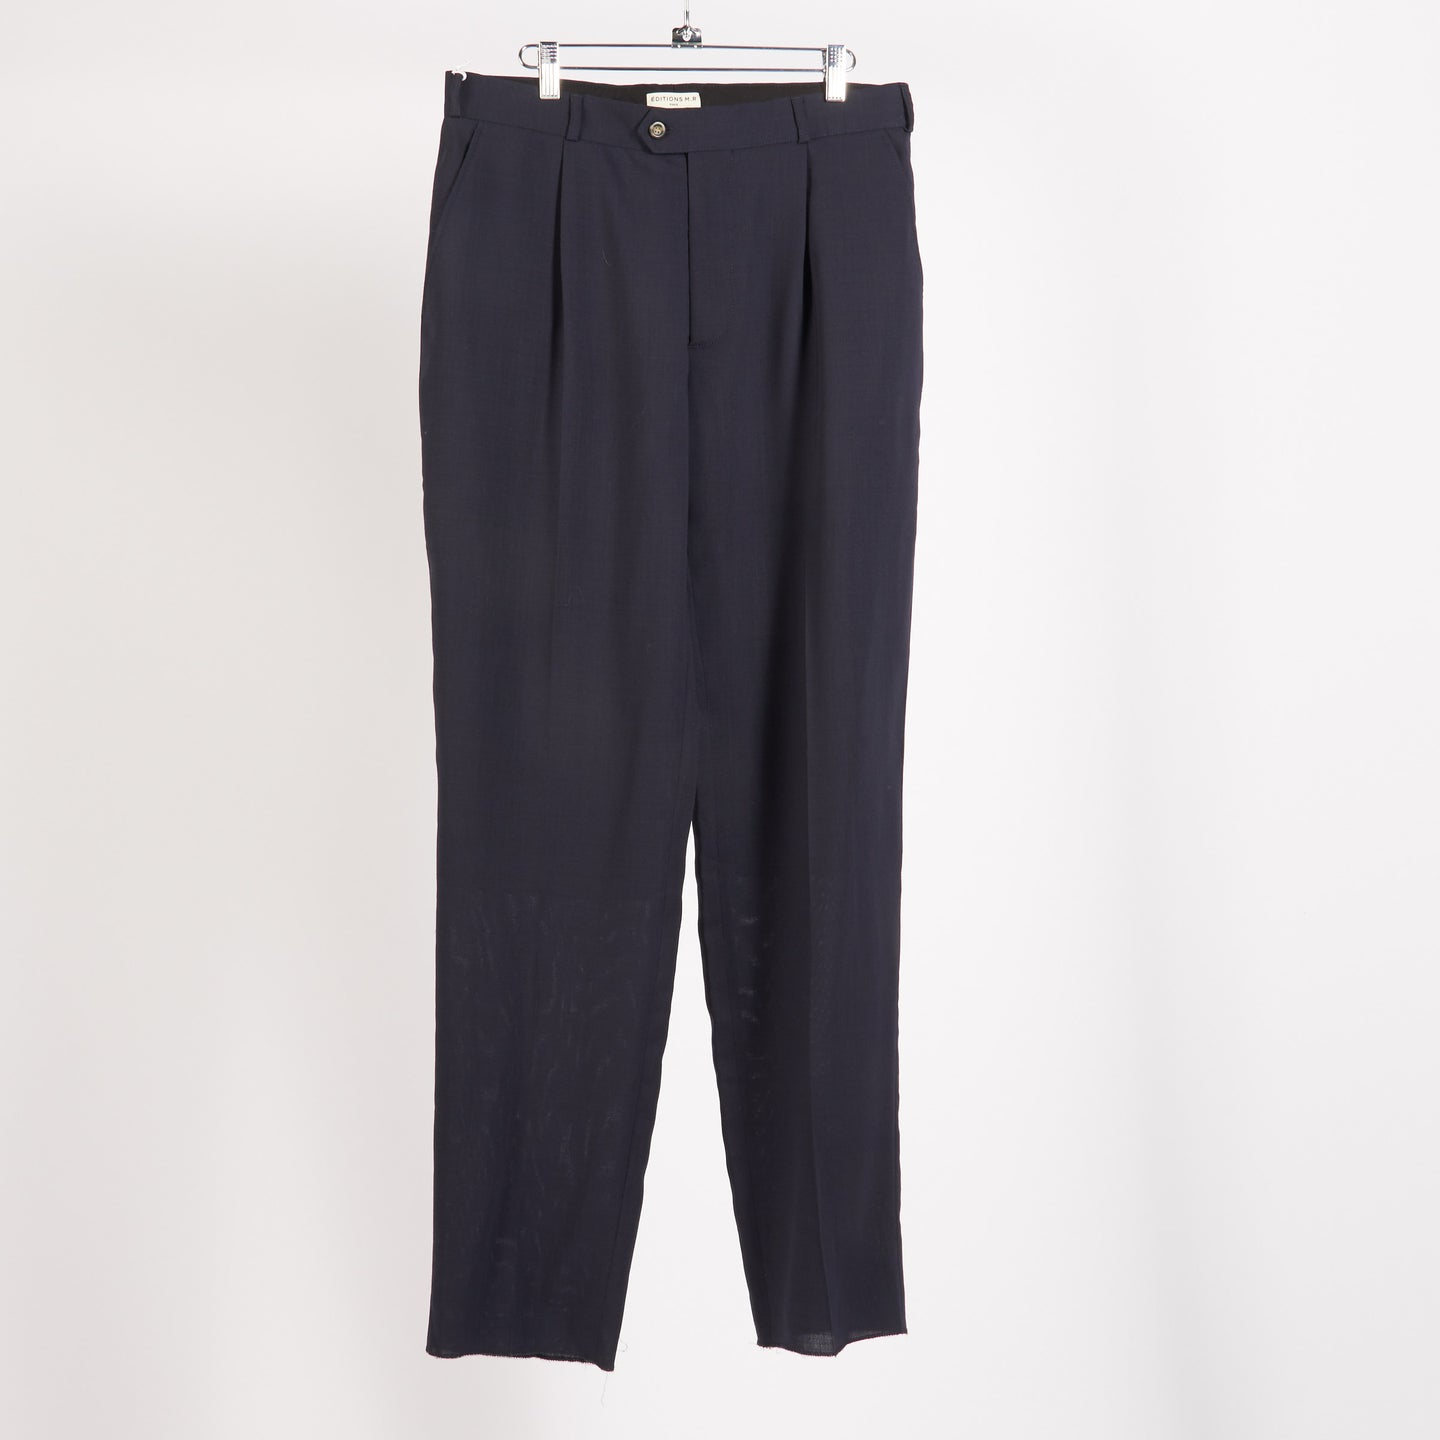 Navy Carrot Pant (Size 50, 52)